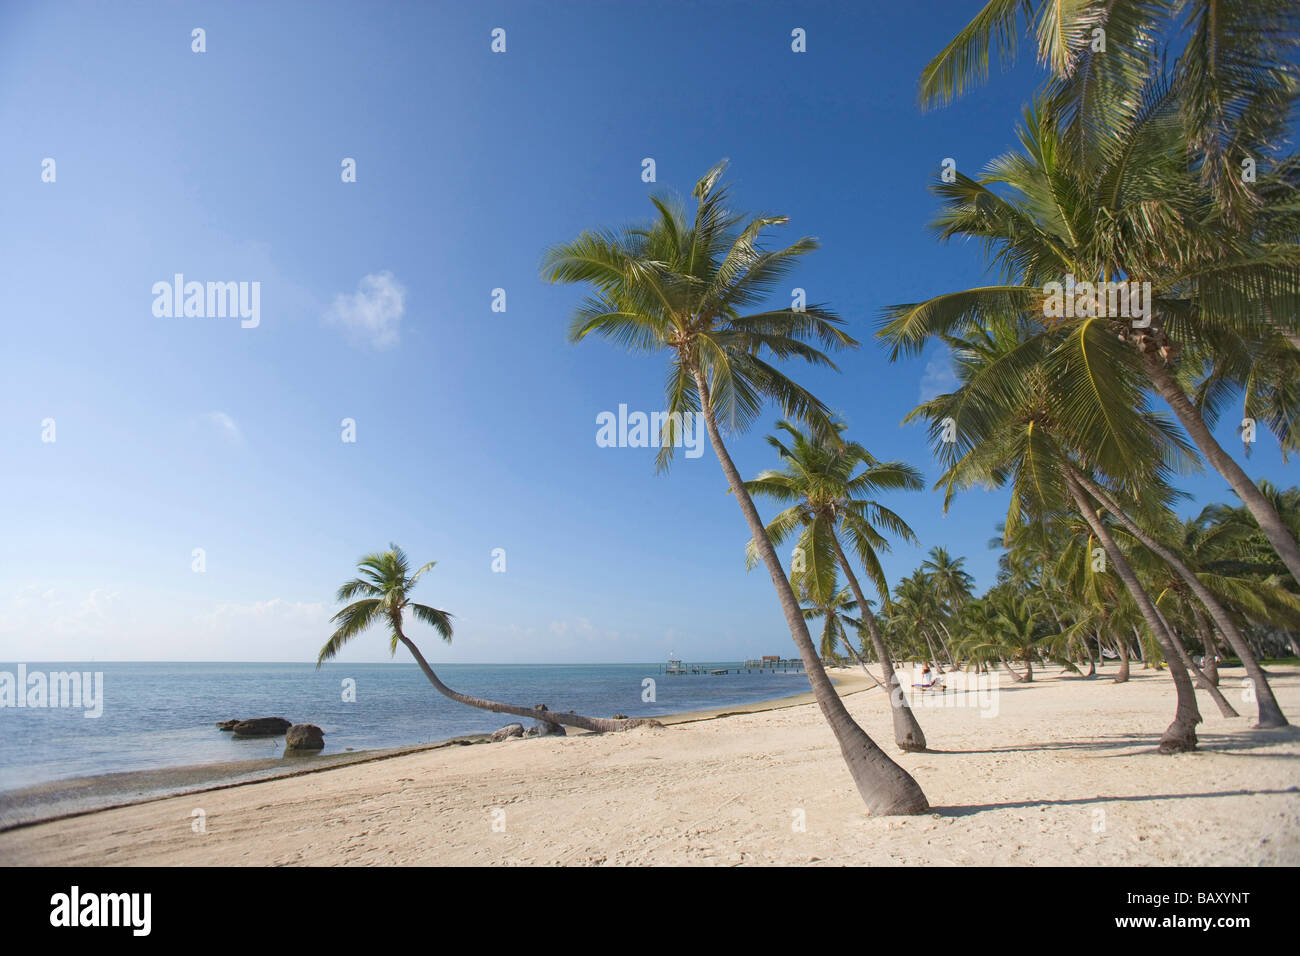 The Moorings Village (has to be mentioned in the caption, not available for commercial use), Islamorada, Florida, - Stock Image